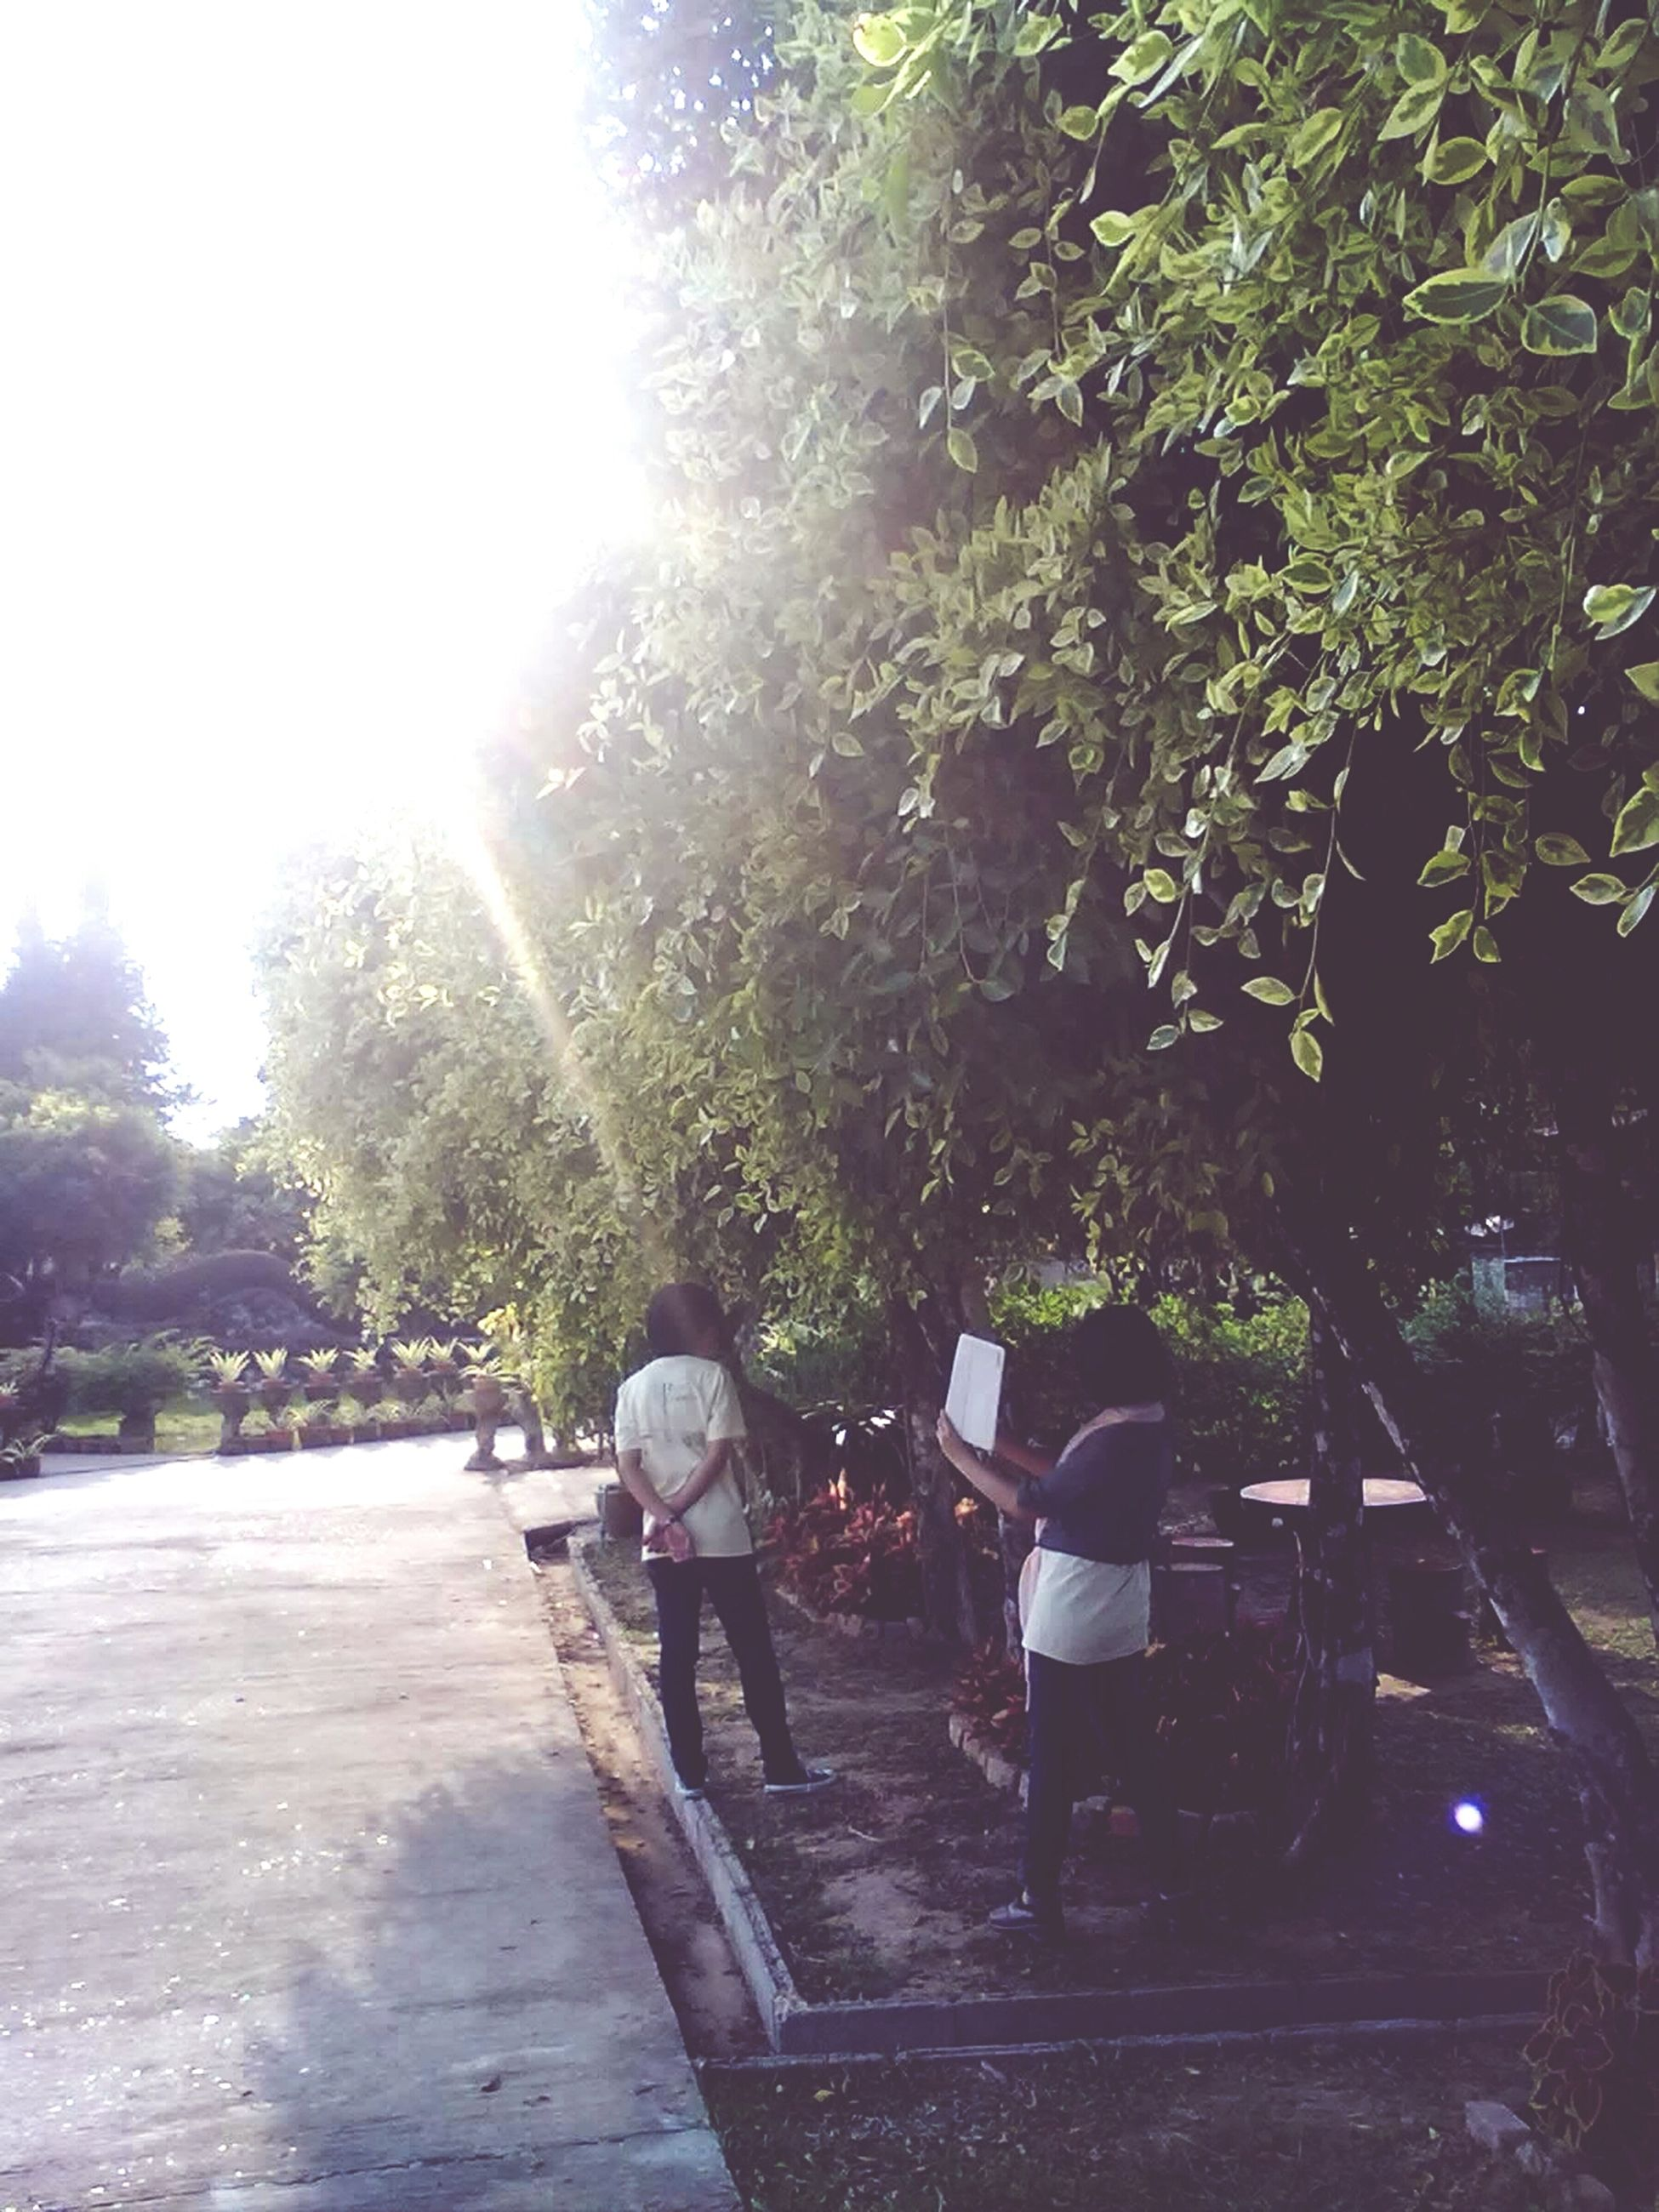 tree, men, lifestyles, rear view, person, leisure activity, sunlight, togetherness, bench, full length, sitting, park - man made space, walking, relaxation, casual clothing, footpath, park bench, bonding